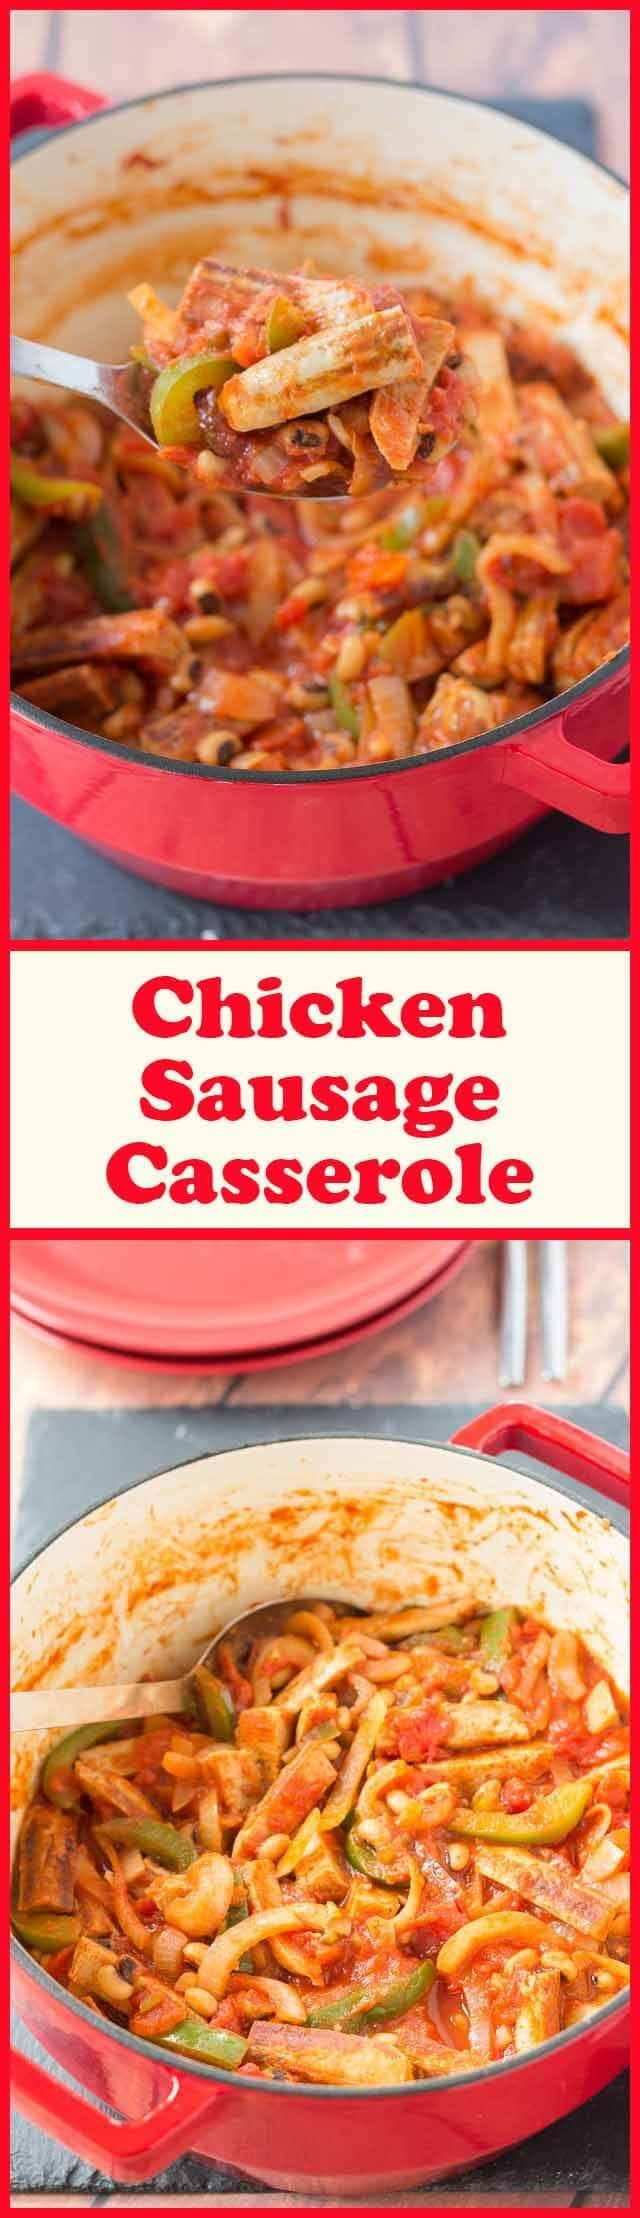 This is a delicious low calorie chicken sausage casserole recipe that takes less than an hour to make. Full of flavour and made in one pan it's a perfect quick healthy meal that all the family will love.